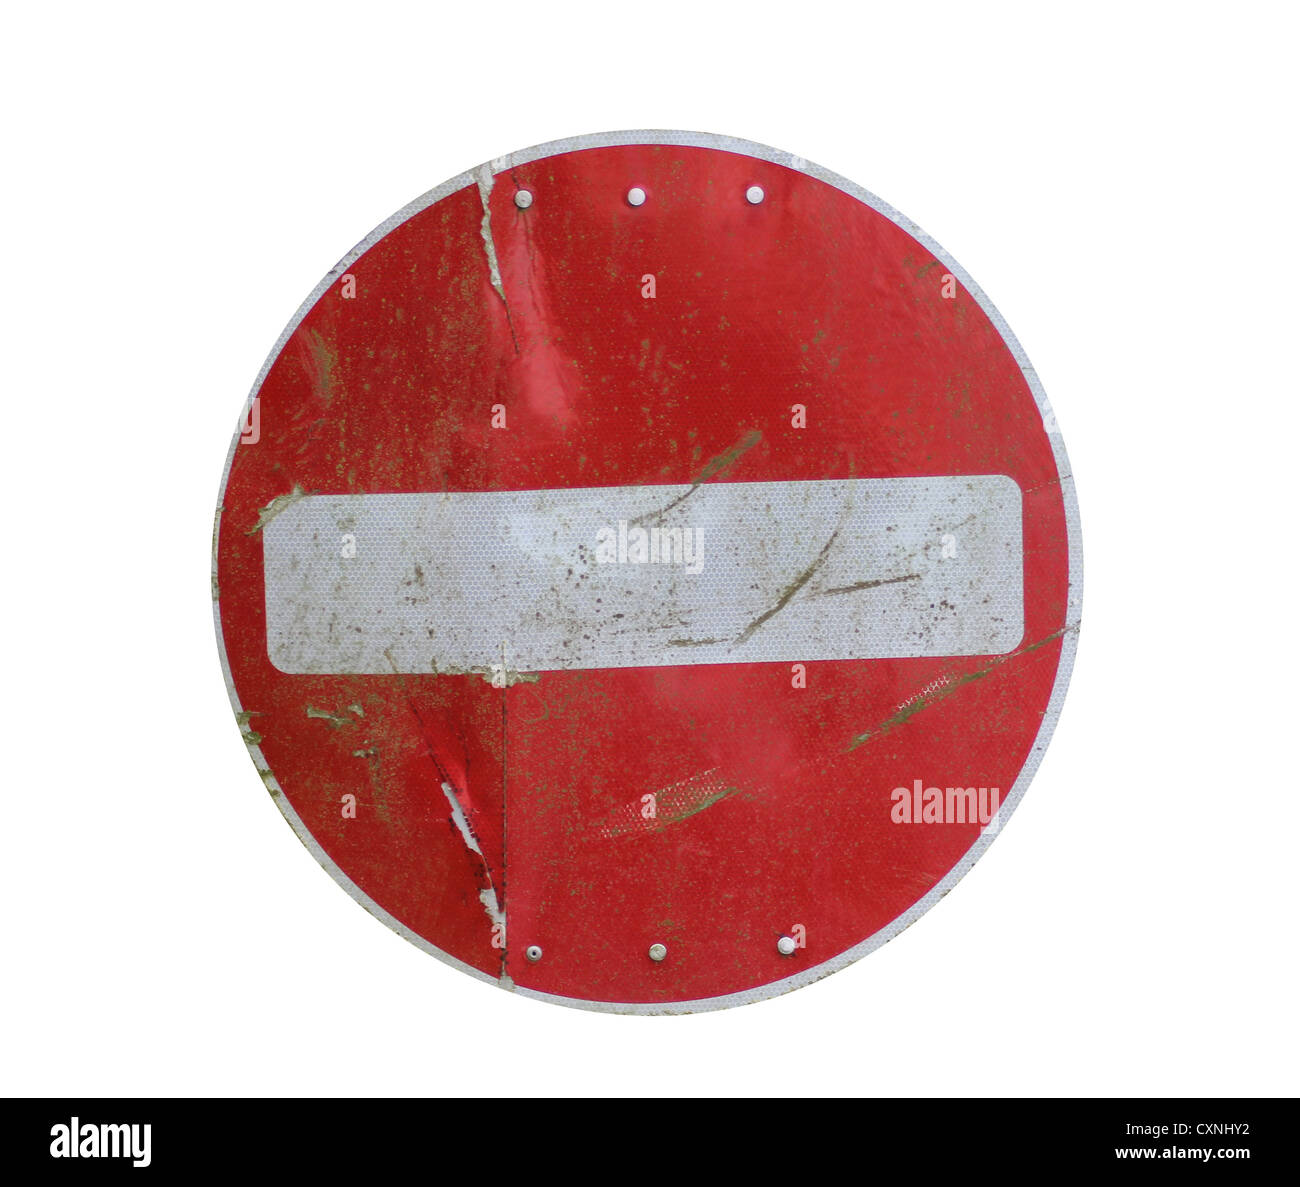 Old red stop road sign isolated on white background. - Stock Image